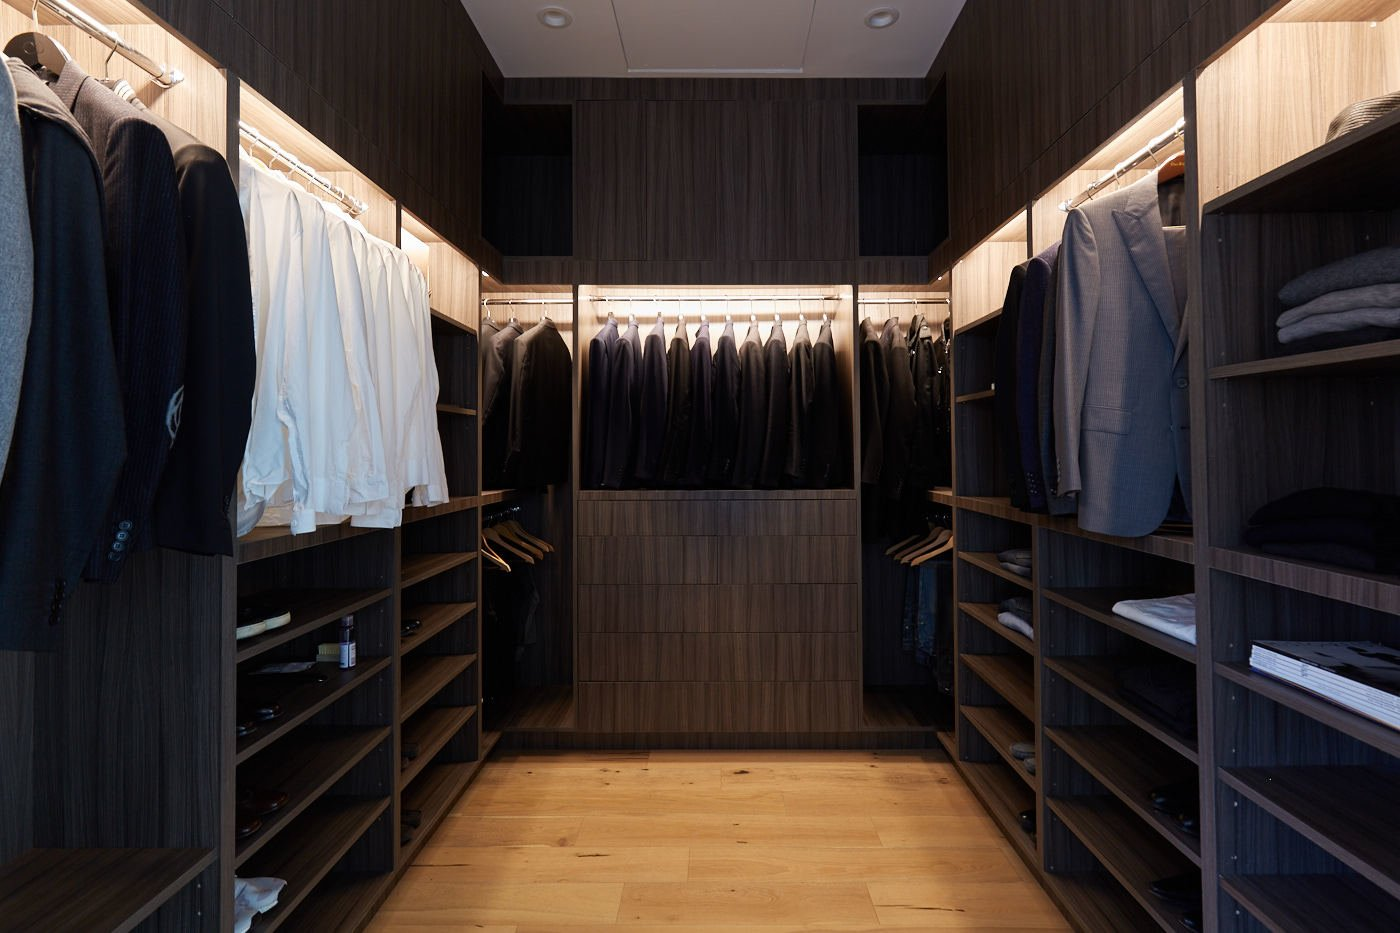 Walk In Closet Photo 8 Of 10 In 10 Modern Walk In Closets From West